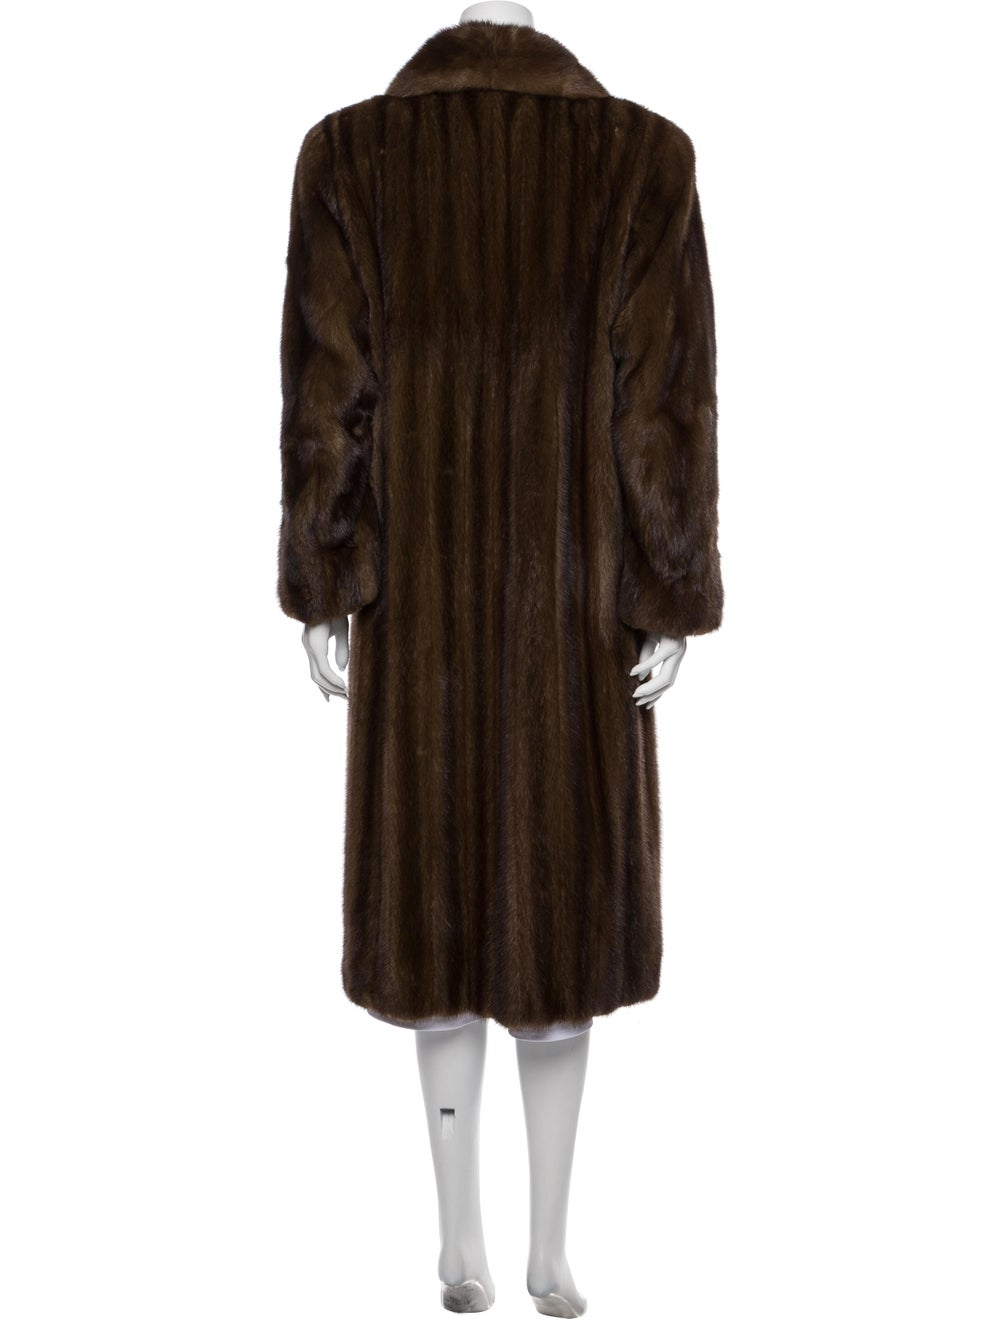 Fur Coat Brown - image 3